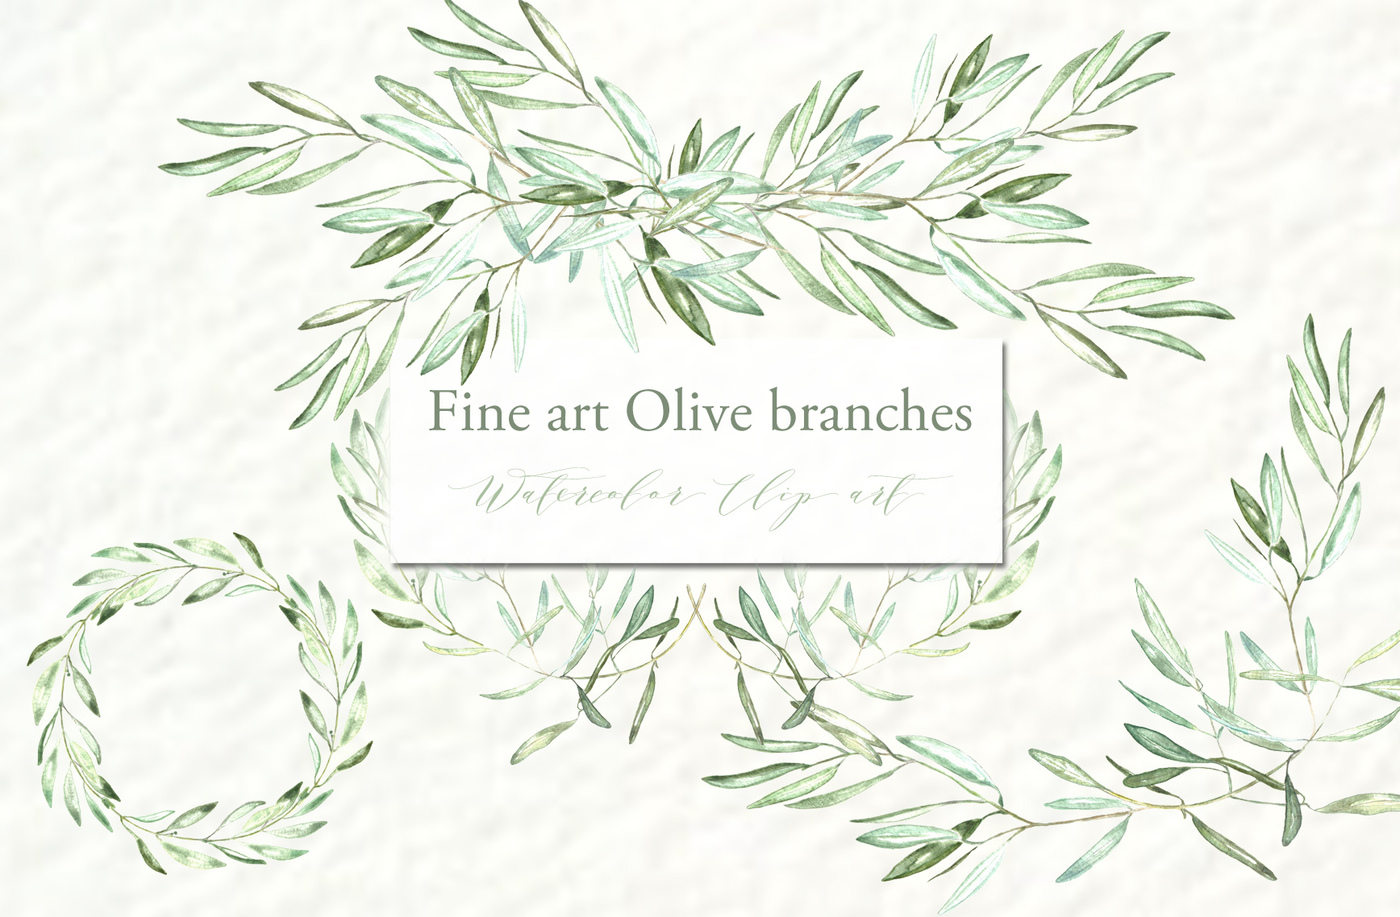 Olive branches. Watercolor clipart. by LABFcreations.